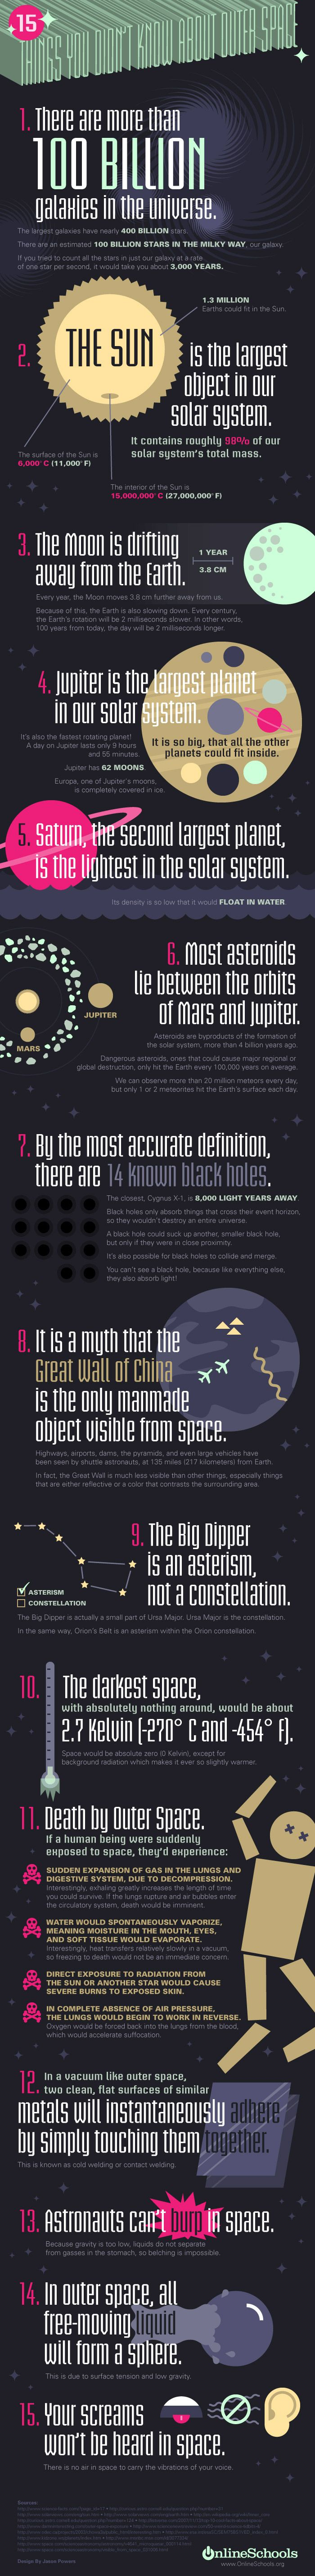 Things You Don't Know About Outer Space (infographic)